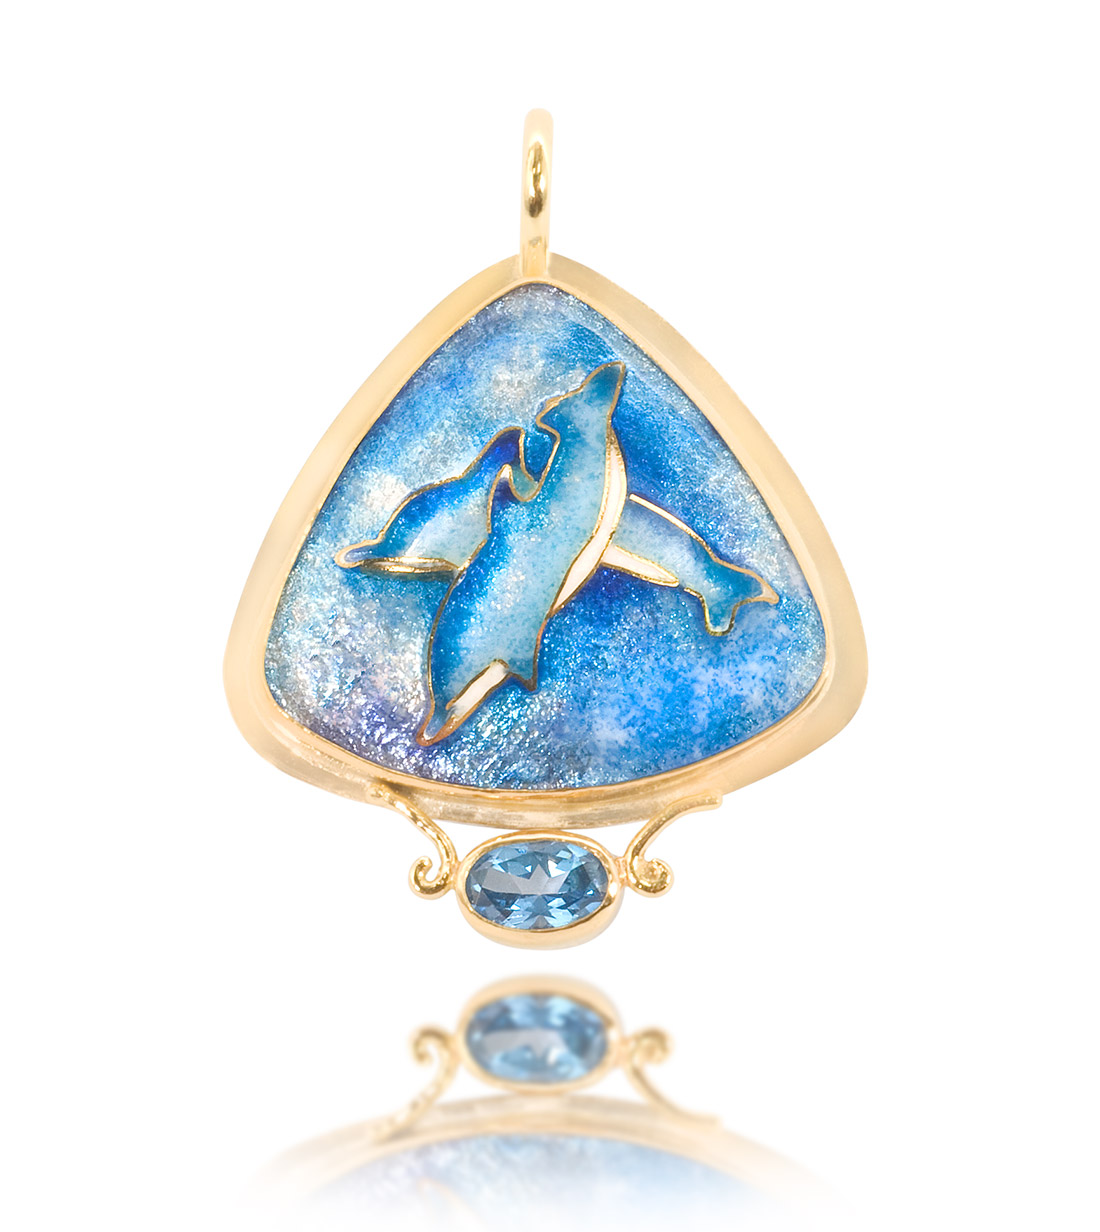 Dolphin | Cloisonne jewelry | Enamel jewelry | Unique jewelry designs